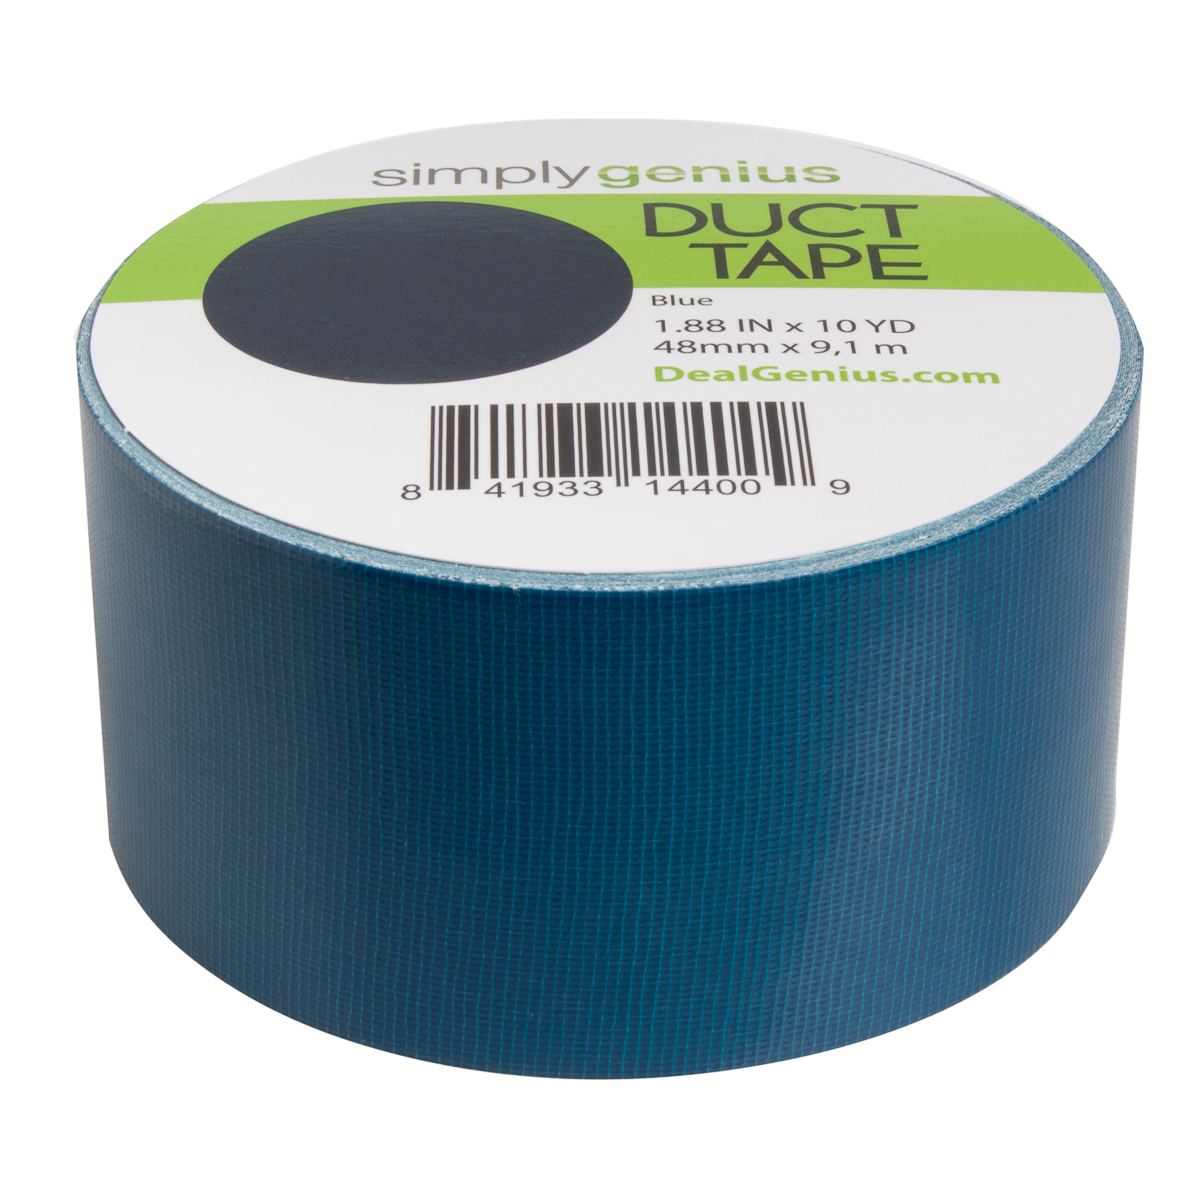 Simply-Genius-Duct-Tape-Roll-Colors-Patterns-Craft-Supplies-Colored-amp-Patterned thumbnail 157